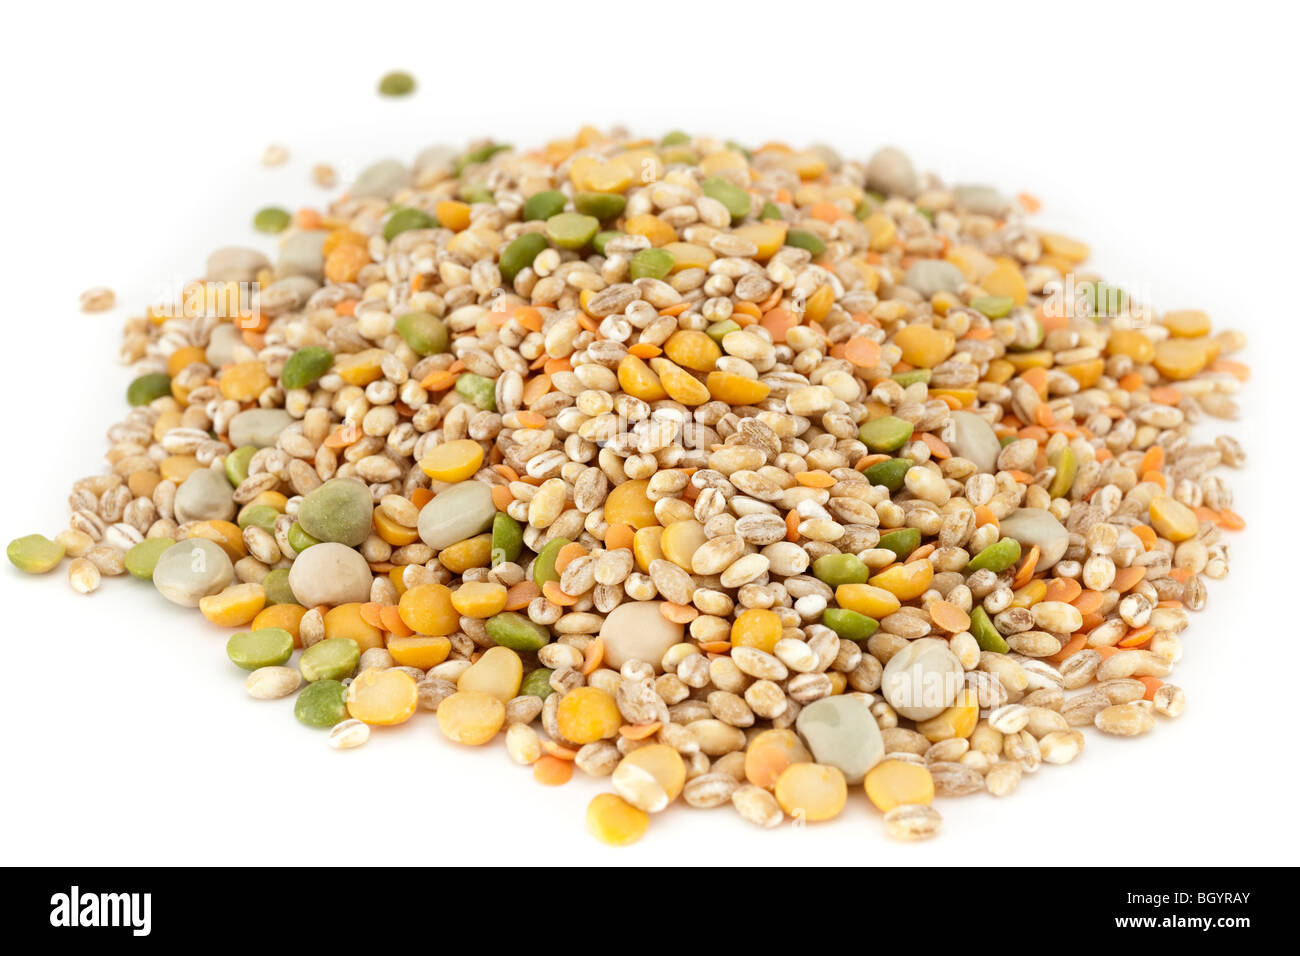 Mixed dried ingredients for soup and broth recipes Stock Photo